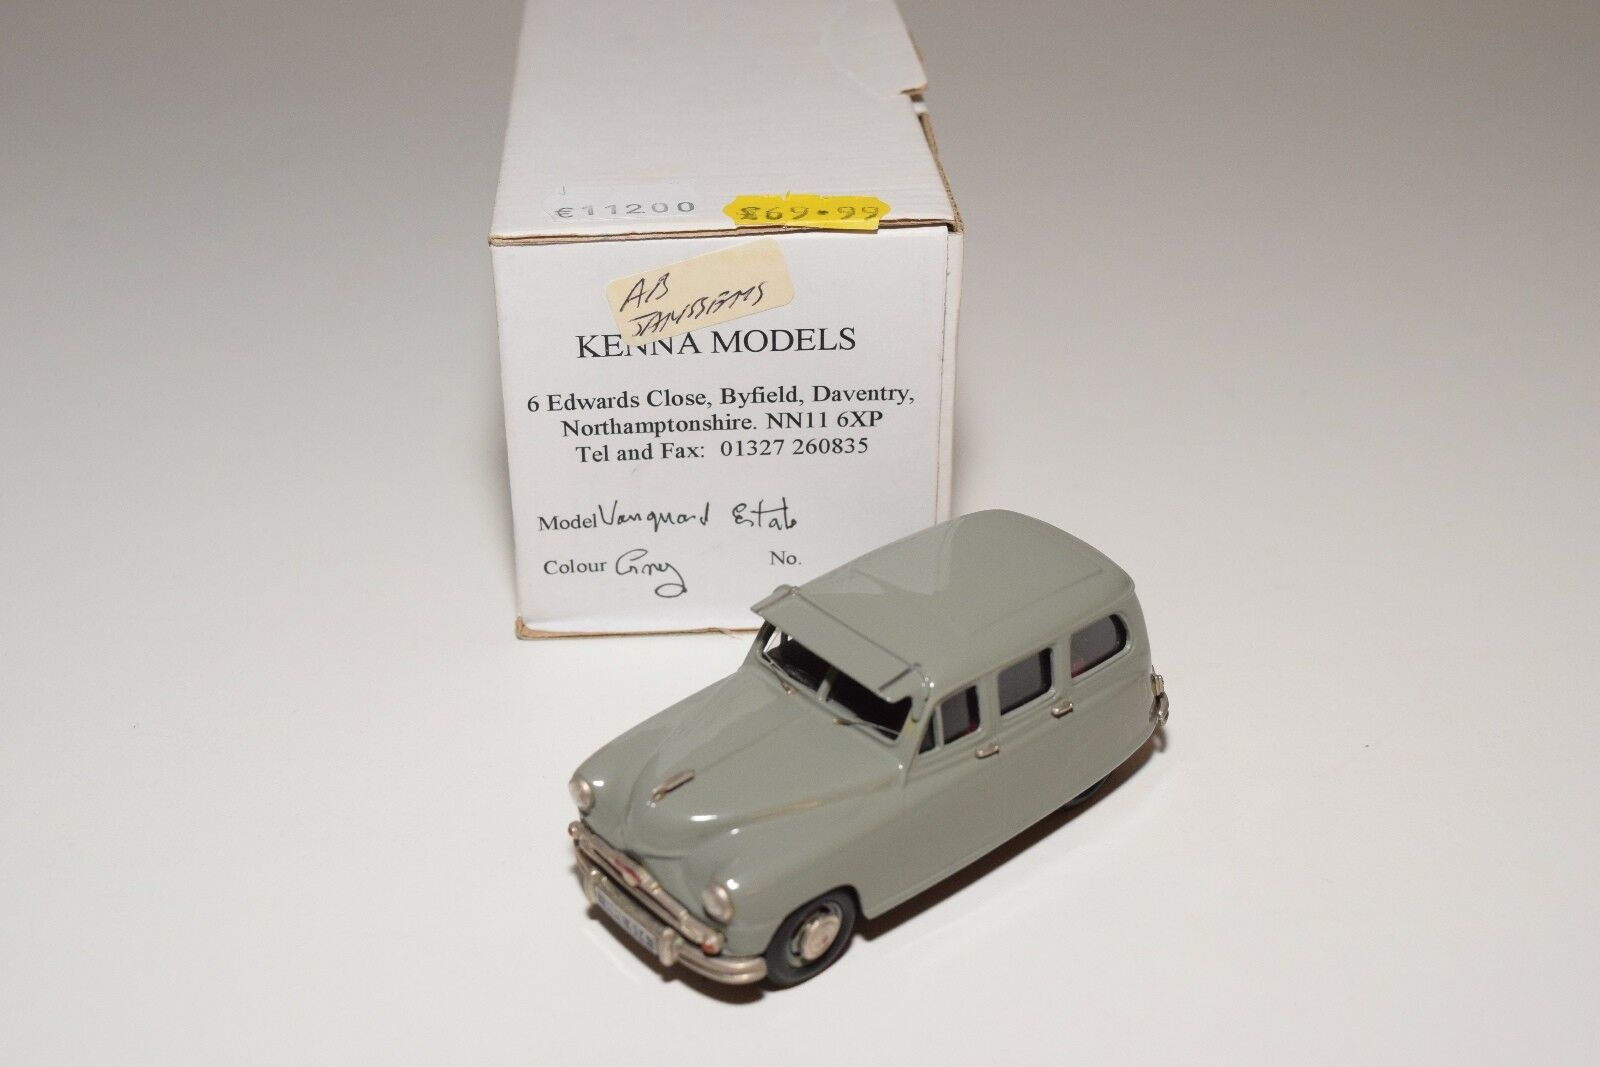 KENNA MODELS STANDARD VANGUARD ESTATE GREY MINT BOXED